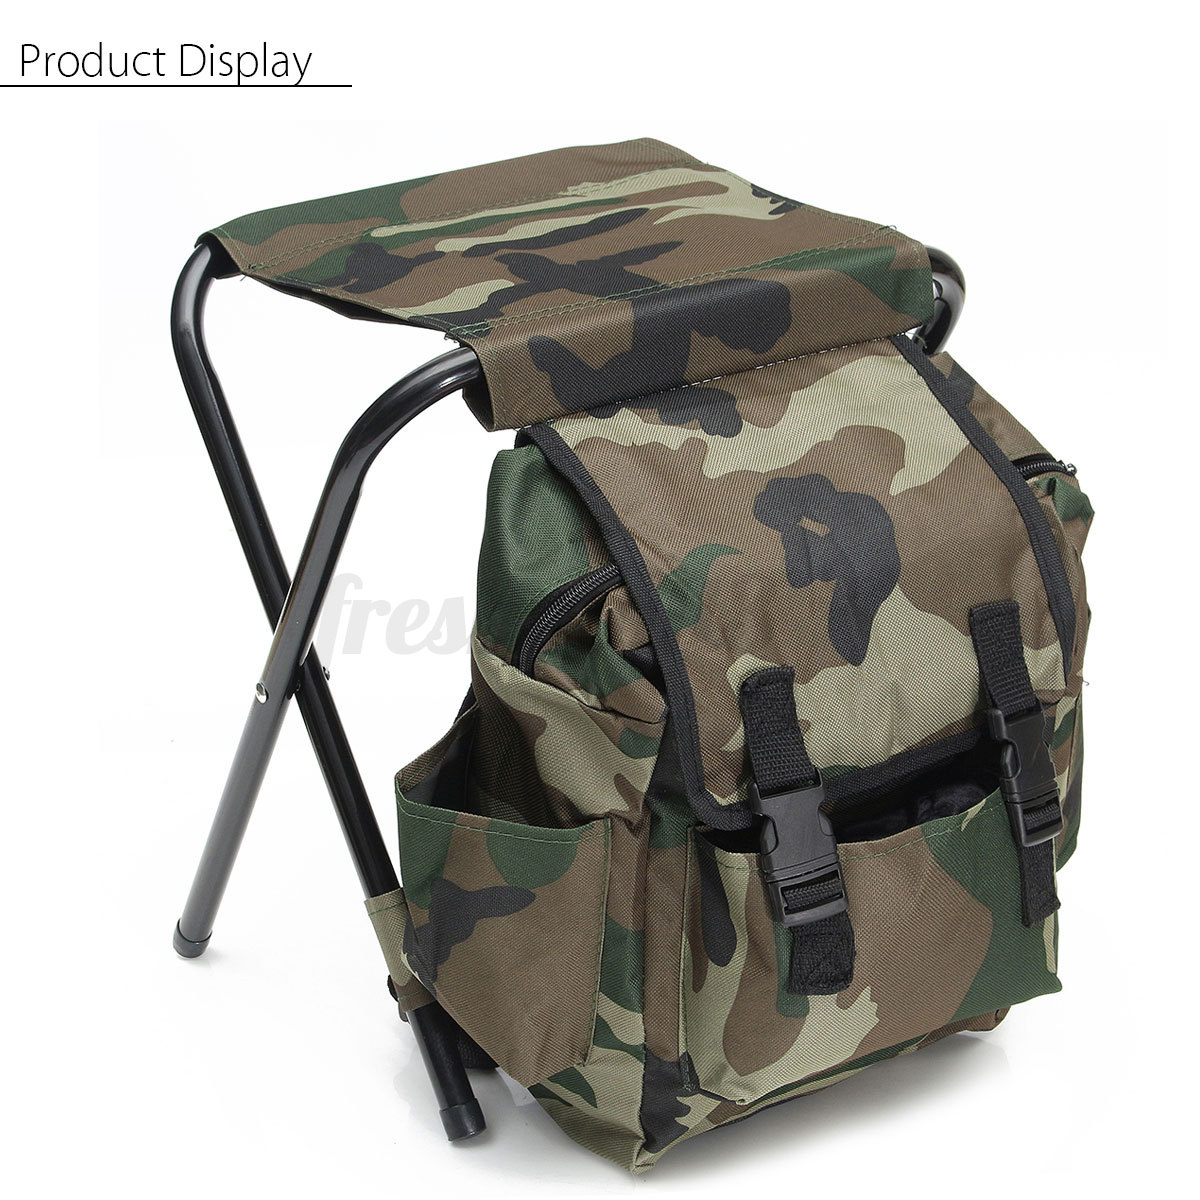 fishing chair box painted oak pressed back chairs outdoor tackle backpack bag camping foldable